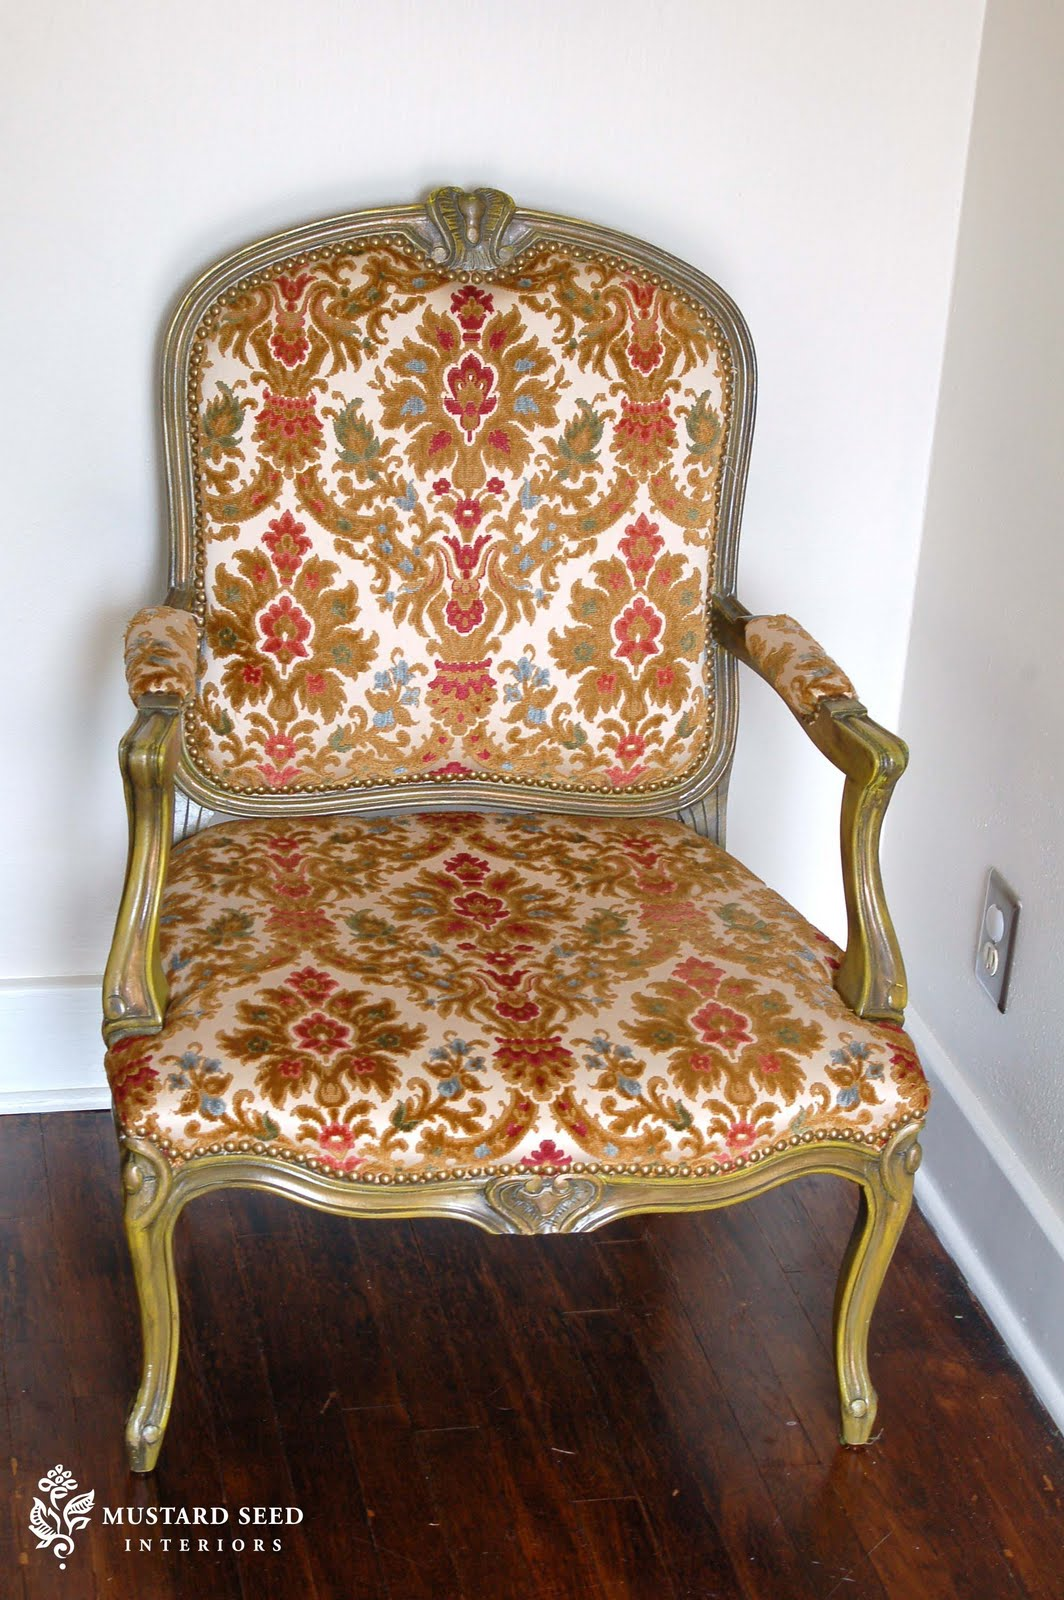 Reupholster Dining Chairs - How To Information | eHow.com